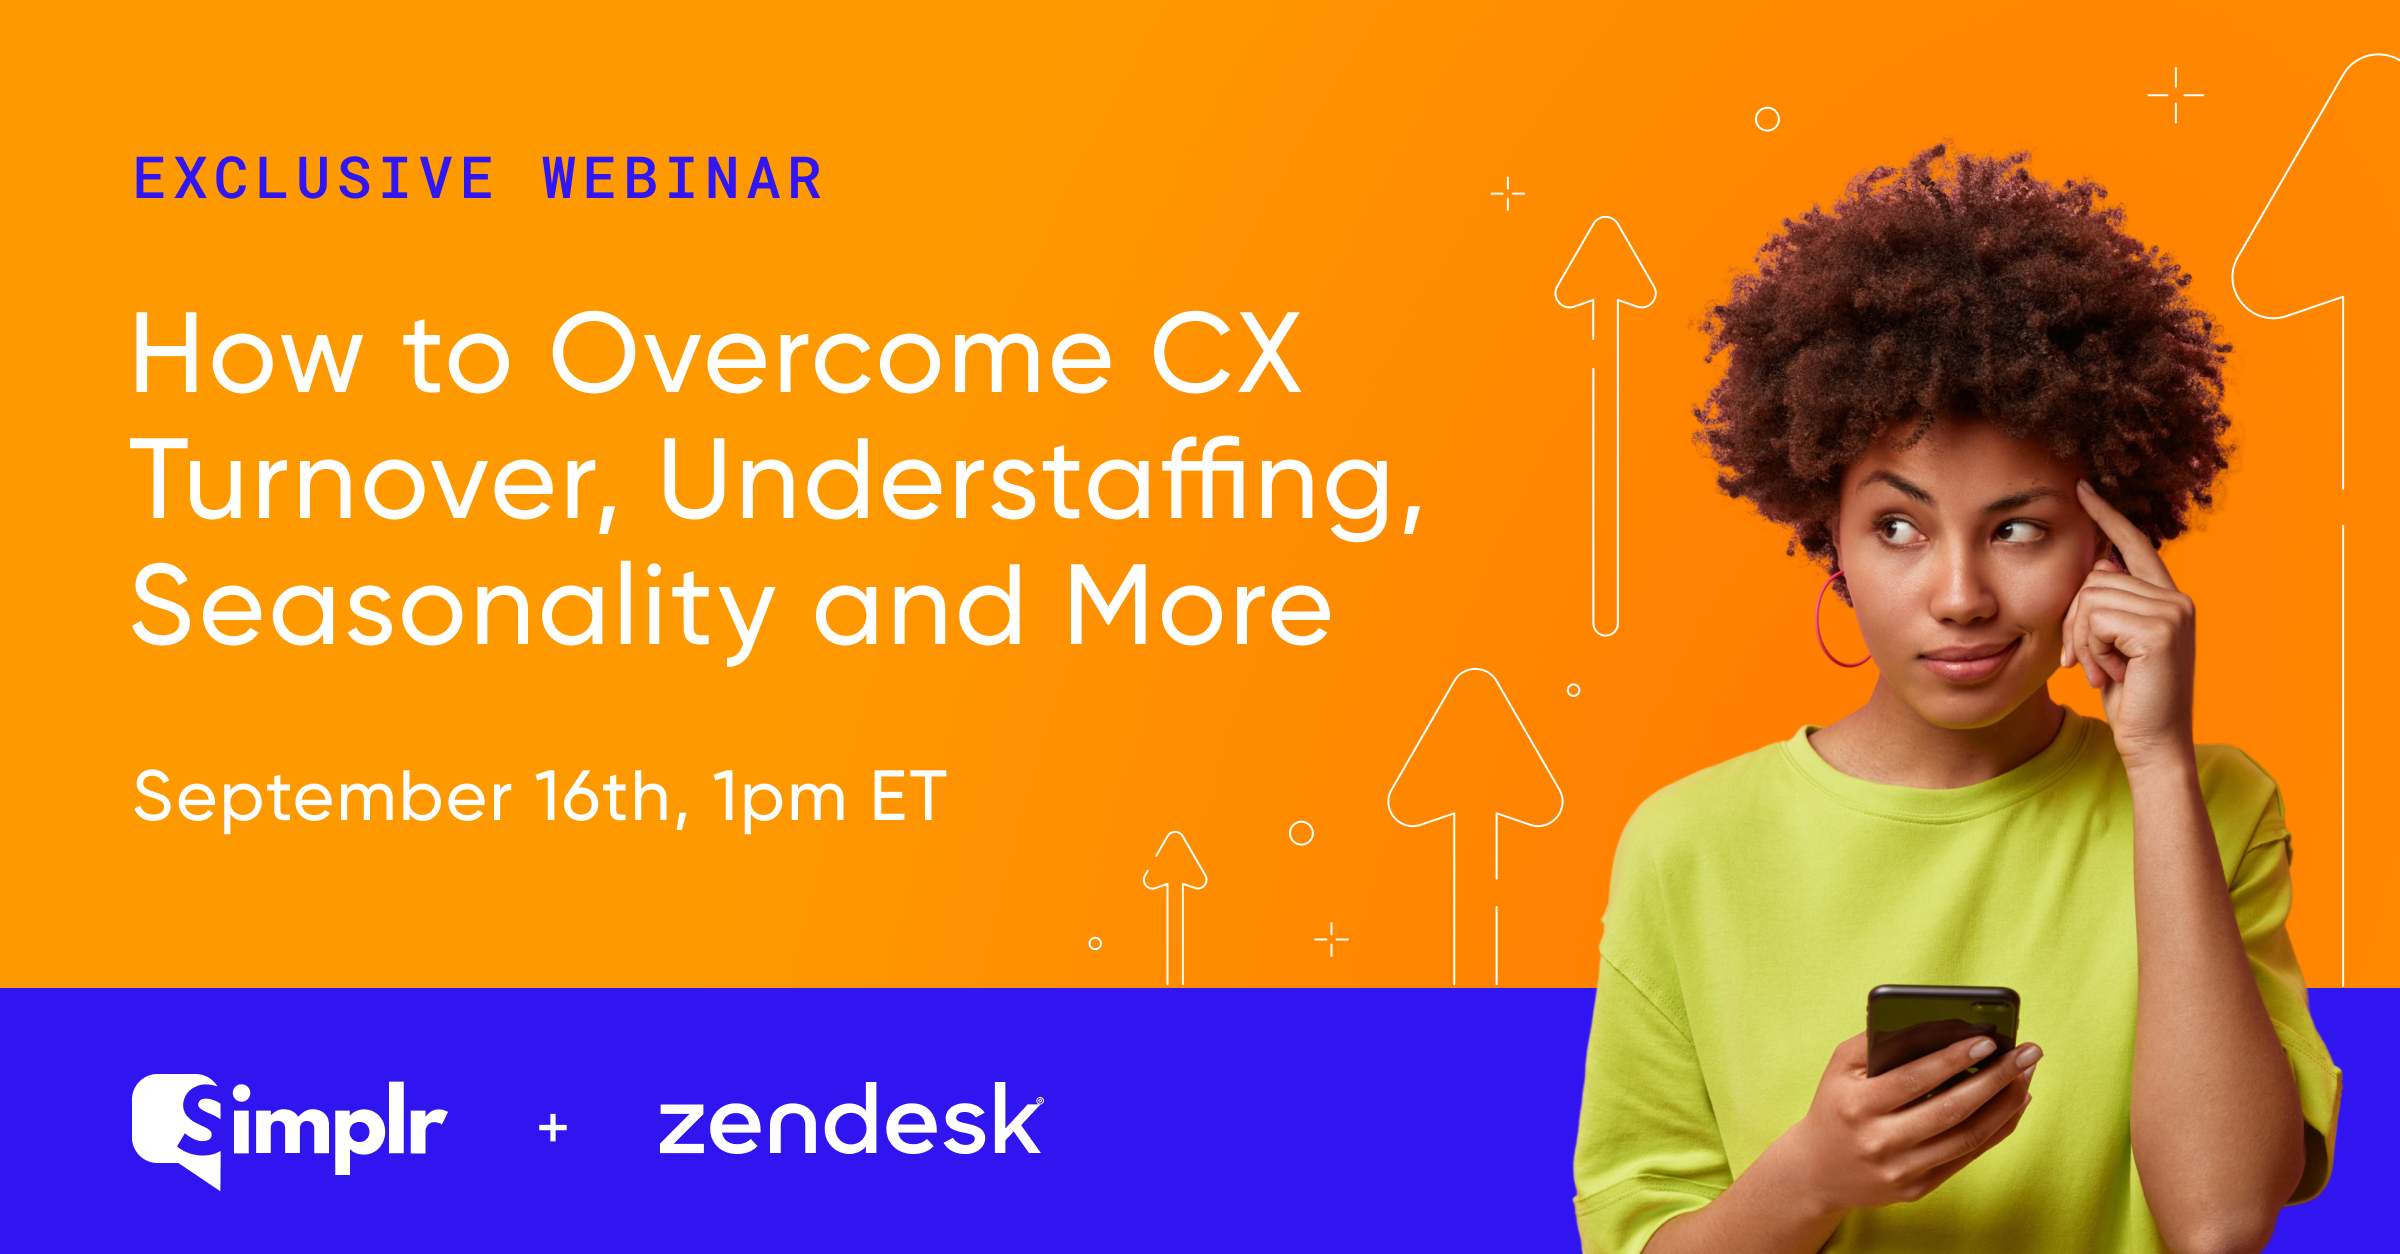 How to Overcome CX Turnover, Understaffing, Seasonality & More Webinar